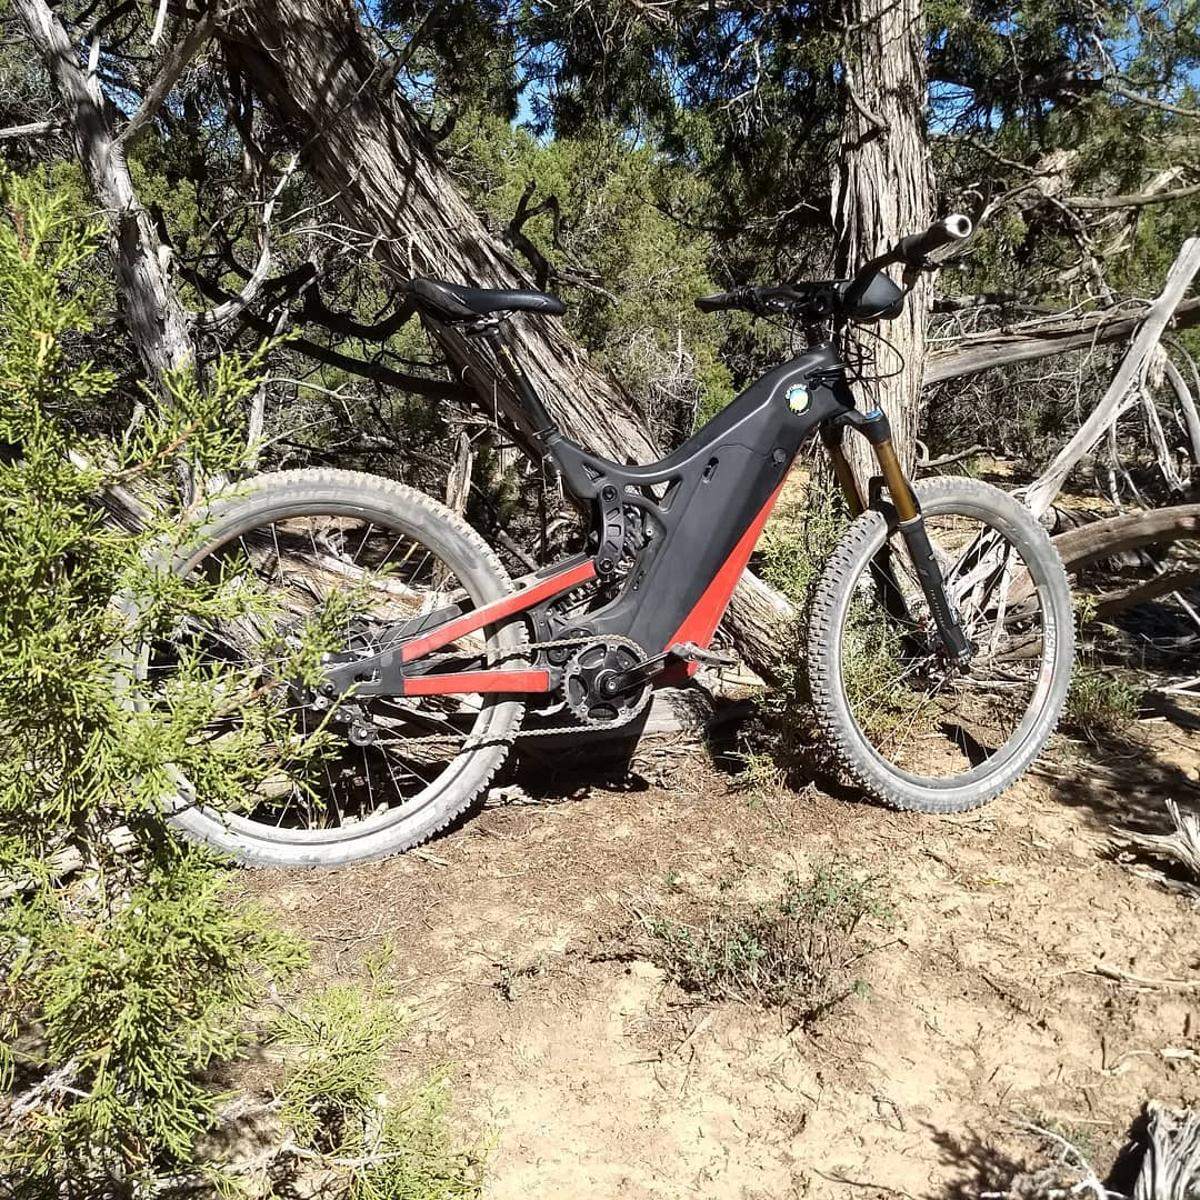 The Optibike R15C in its natural environment